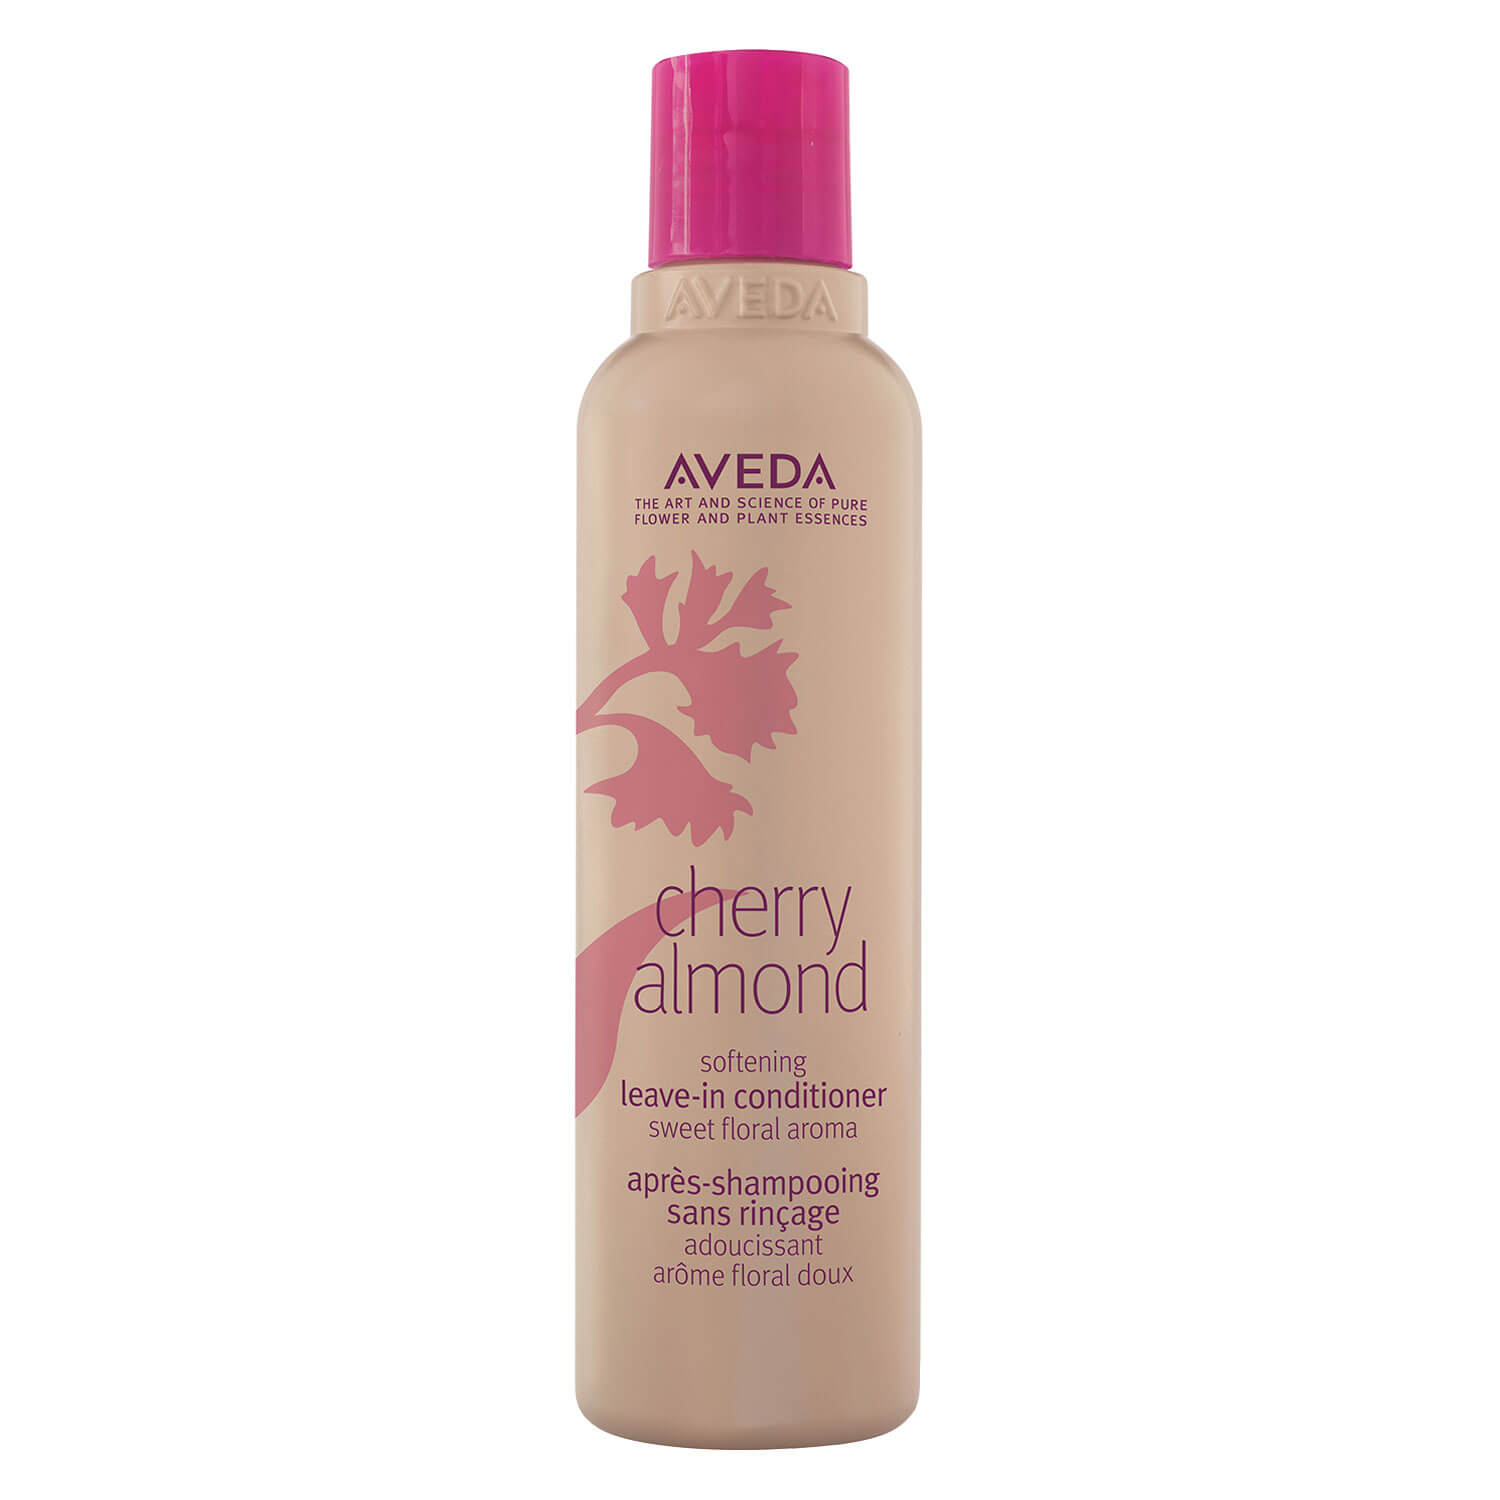 cherry almond - leave-in conditioner